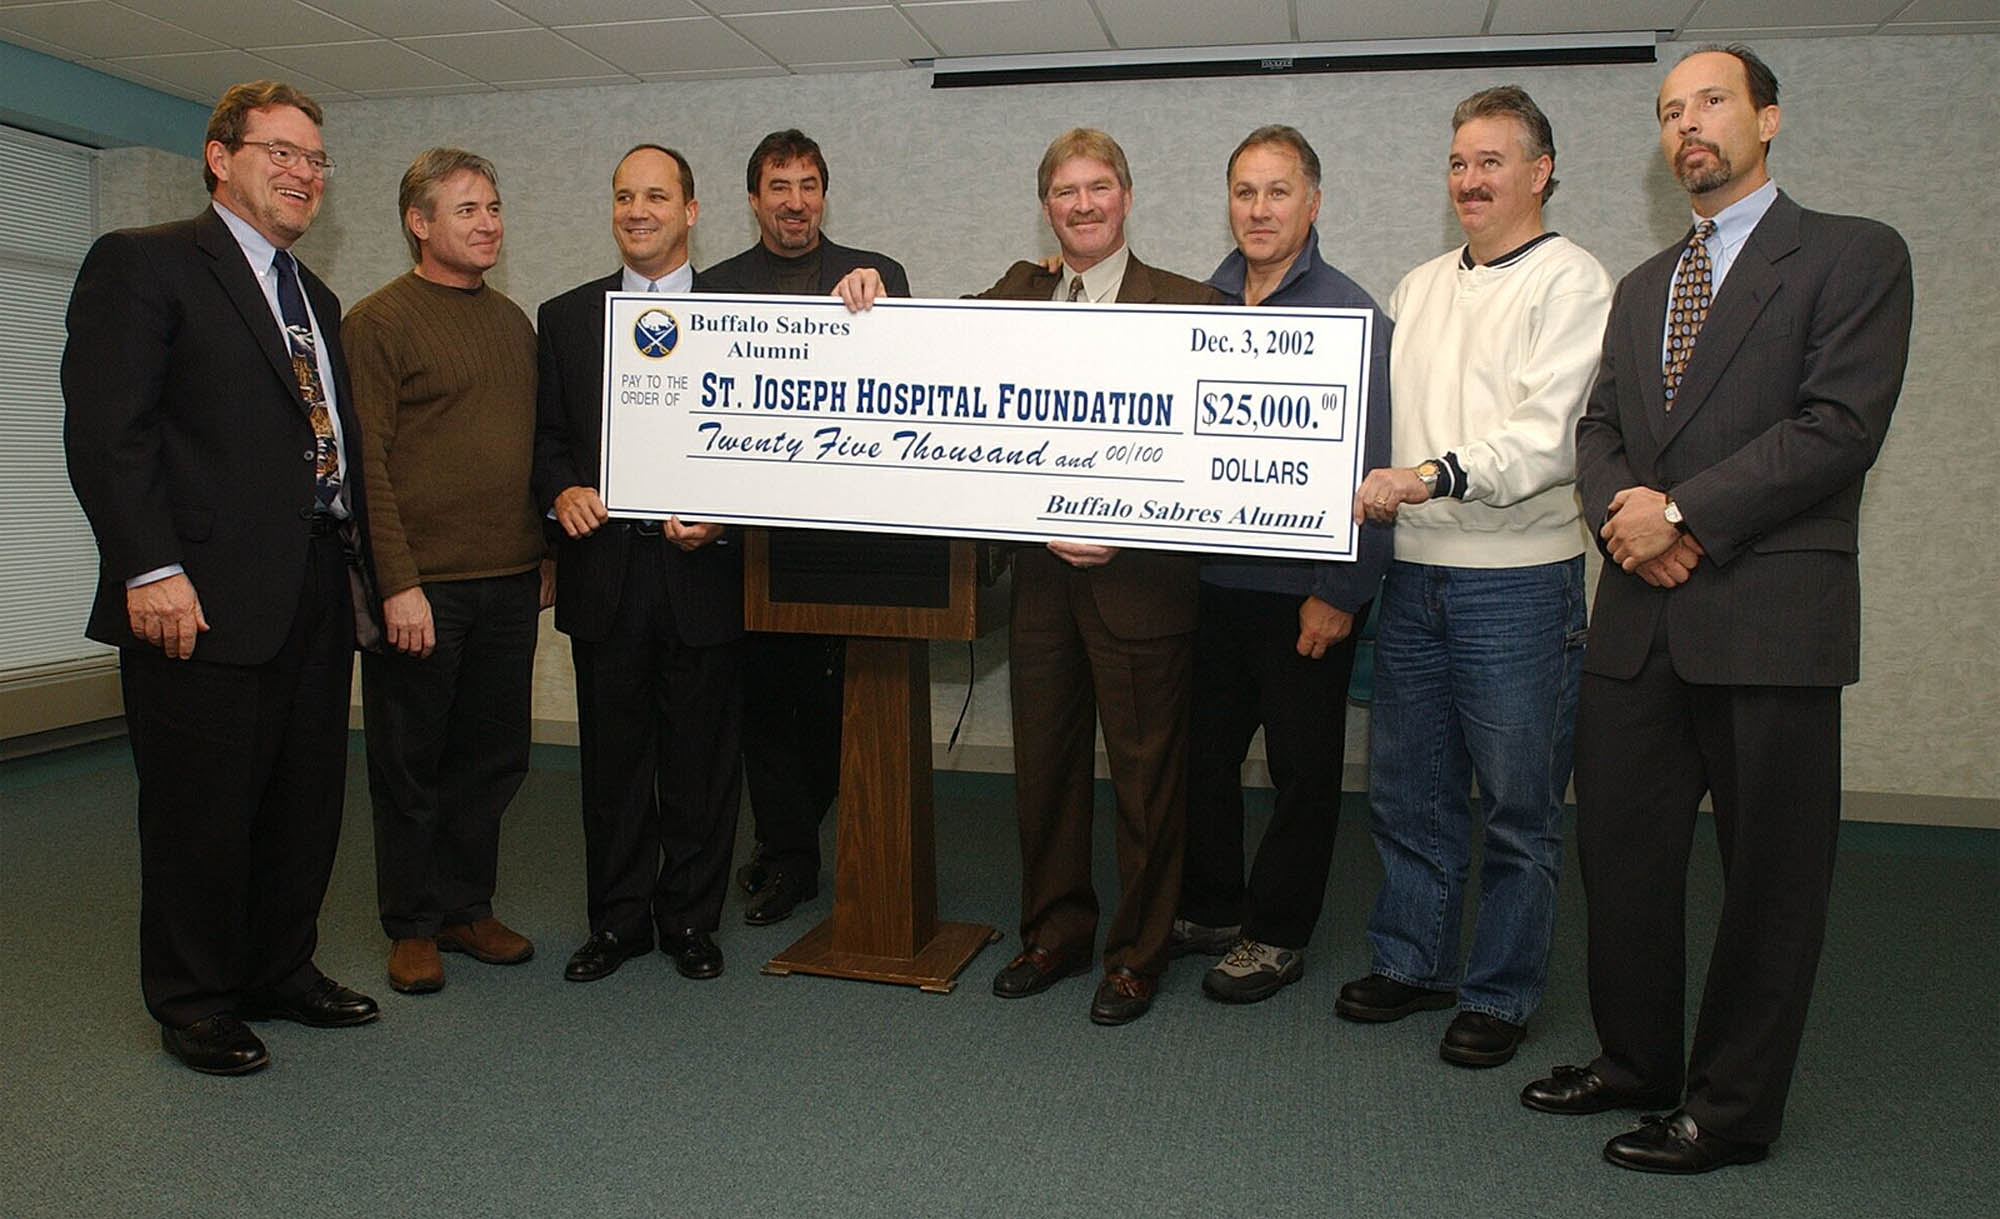 Buffalo Sabres Alumni donate $25,000.00 to the St. Joseph Hospital  Foundation on Dec. 3, 2002. Pictured from left to right: Michael W. Gerrity, President of St. Joseph Hospital Foundation; Buffalo Sabres alumni Rene Robert,  Derek Smith, Larry Playfair, Rick Martin, Gilbert Perreault, and Richie Dunn; at far right is James Manzella, St. Joe's chairman of the foundation board. (Harry Scull Jr./Buffalo News)